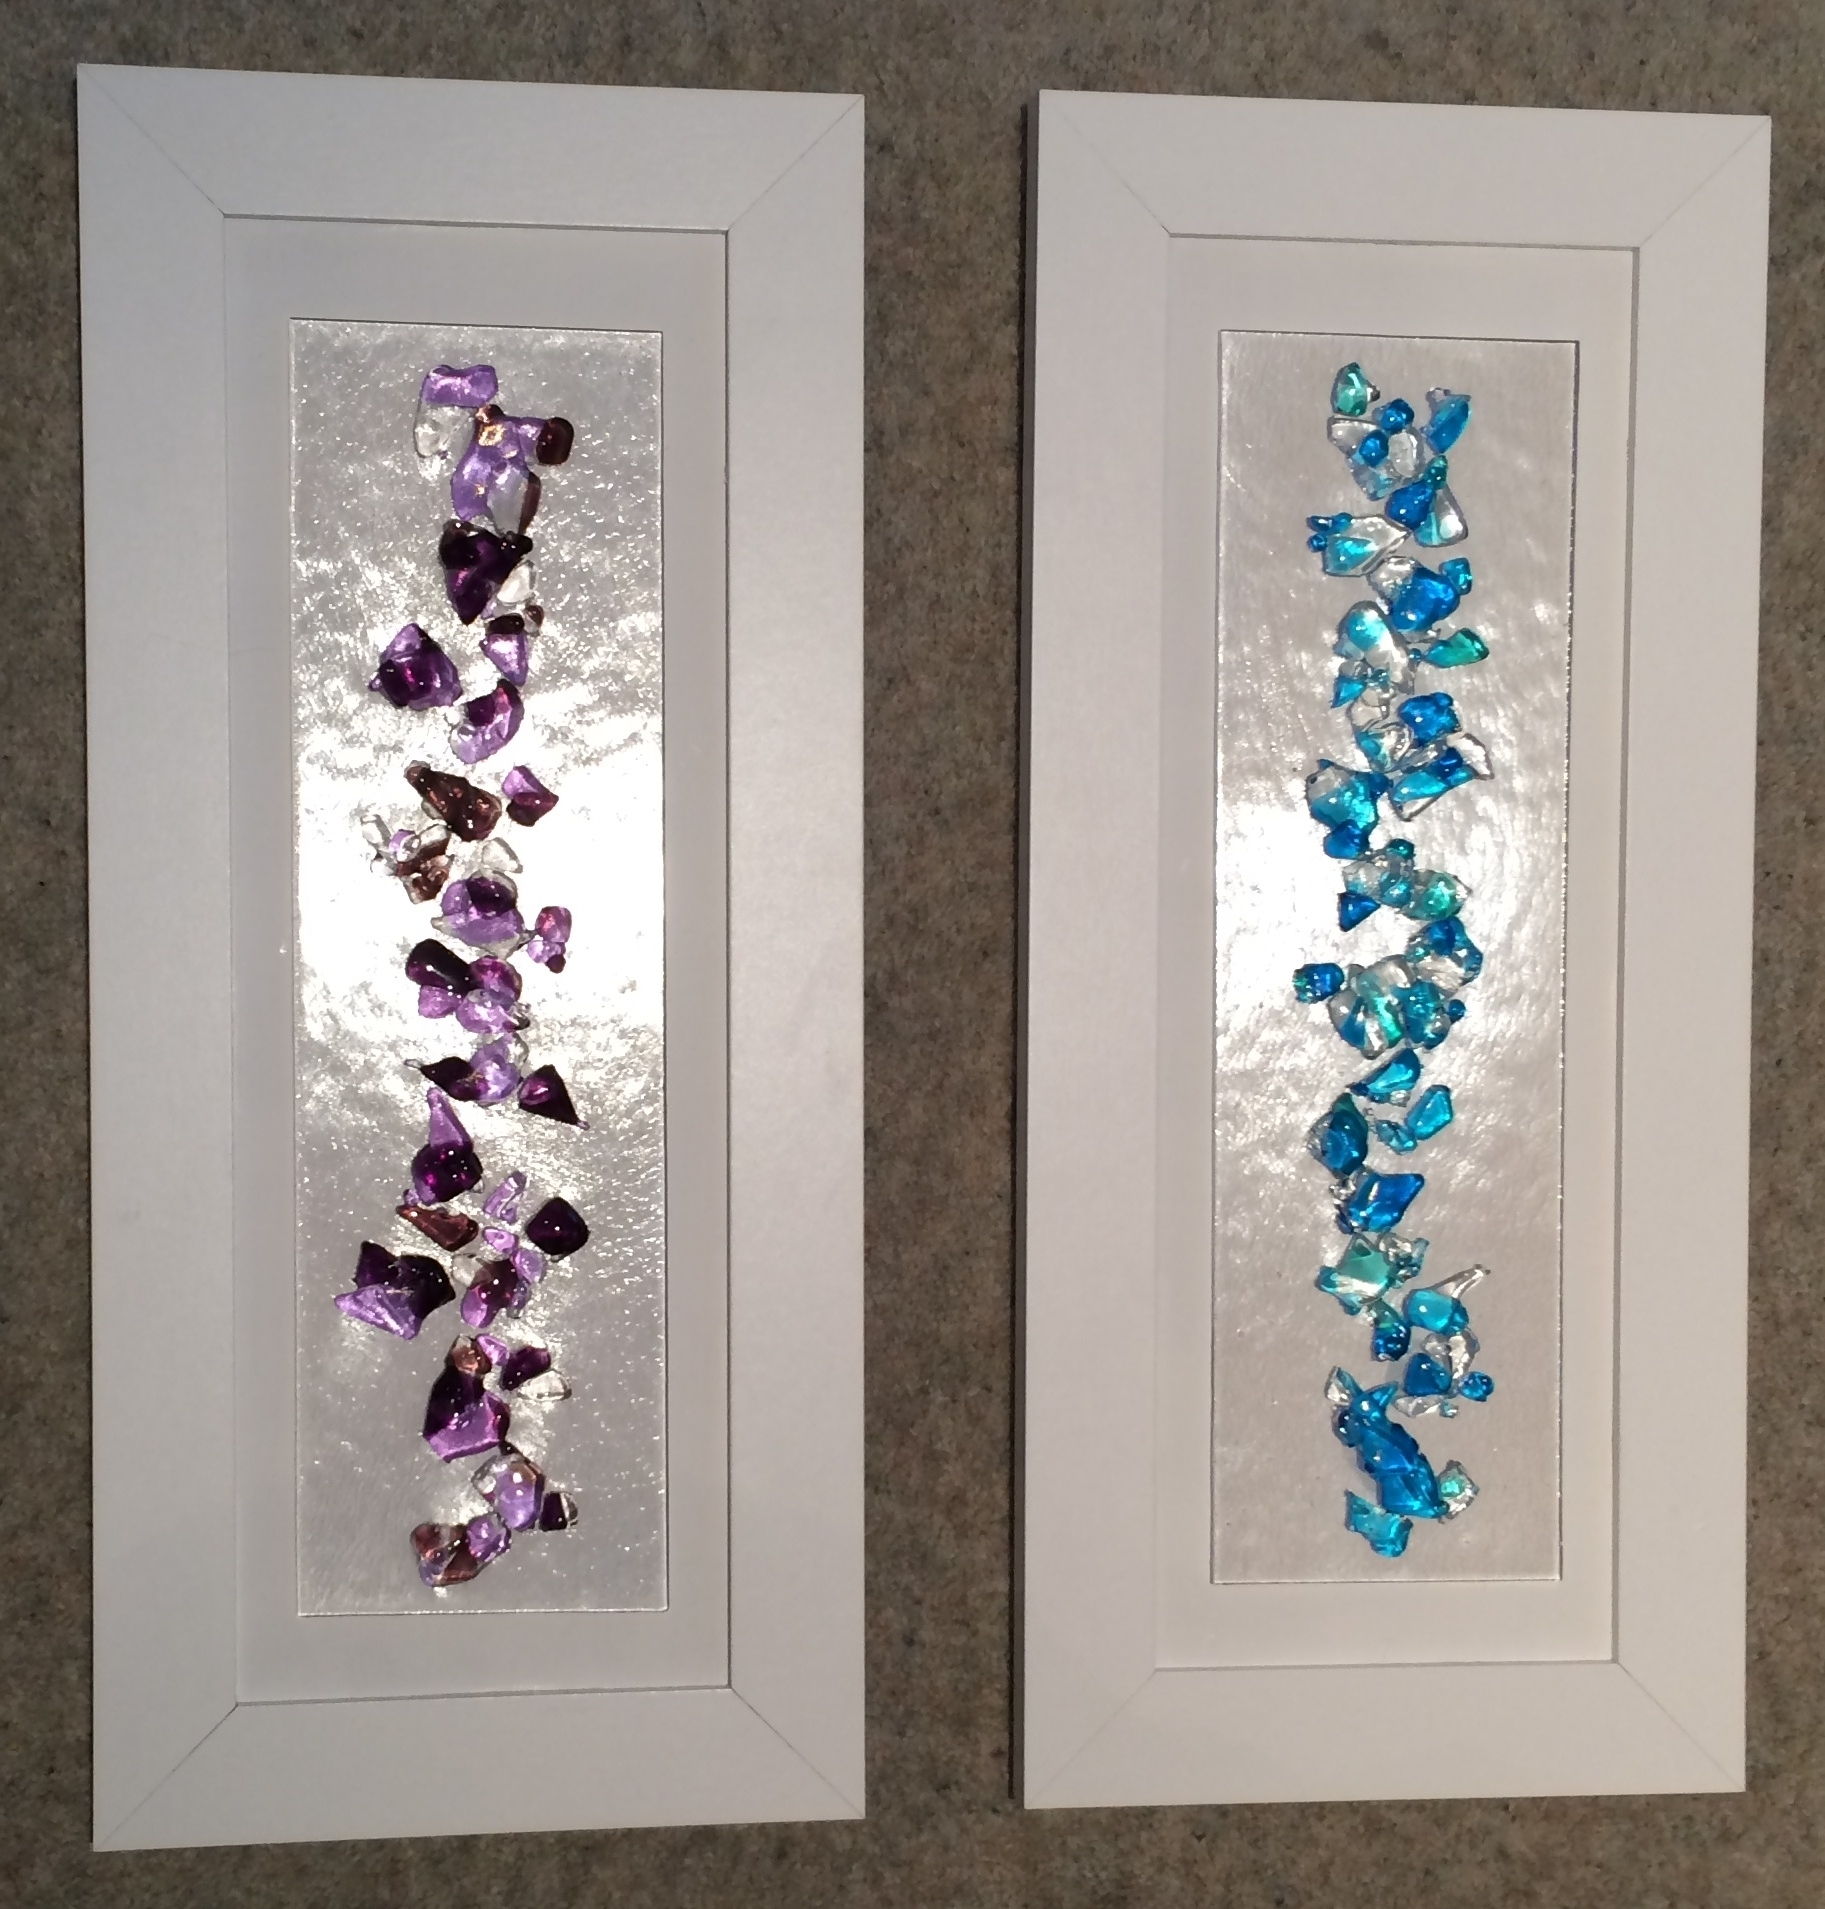 Most Recently Released Fused Glass Art For Walls Within Lola's Little Glass Studio – Fused Glass Art Home Page (View 12 of 15)